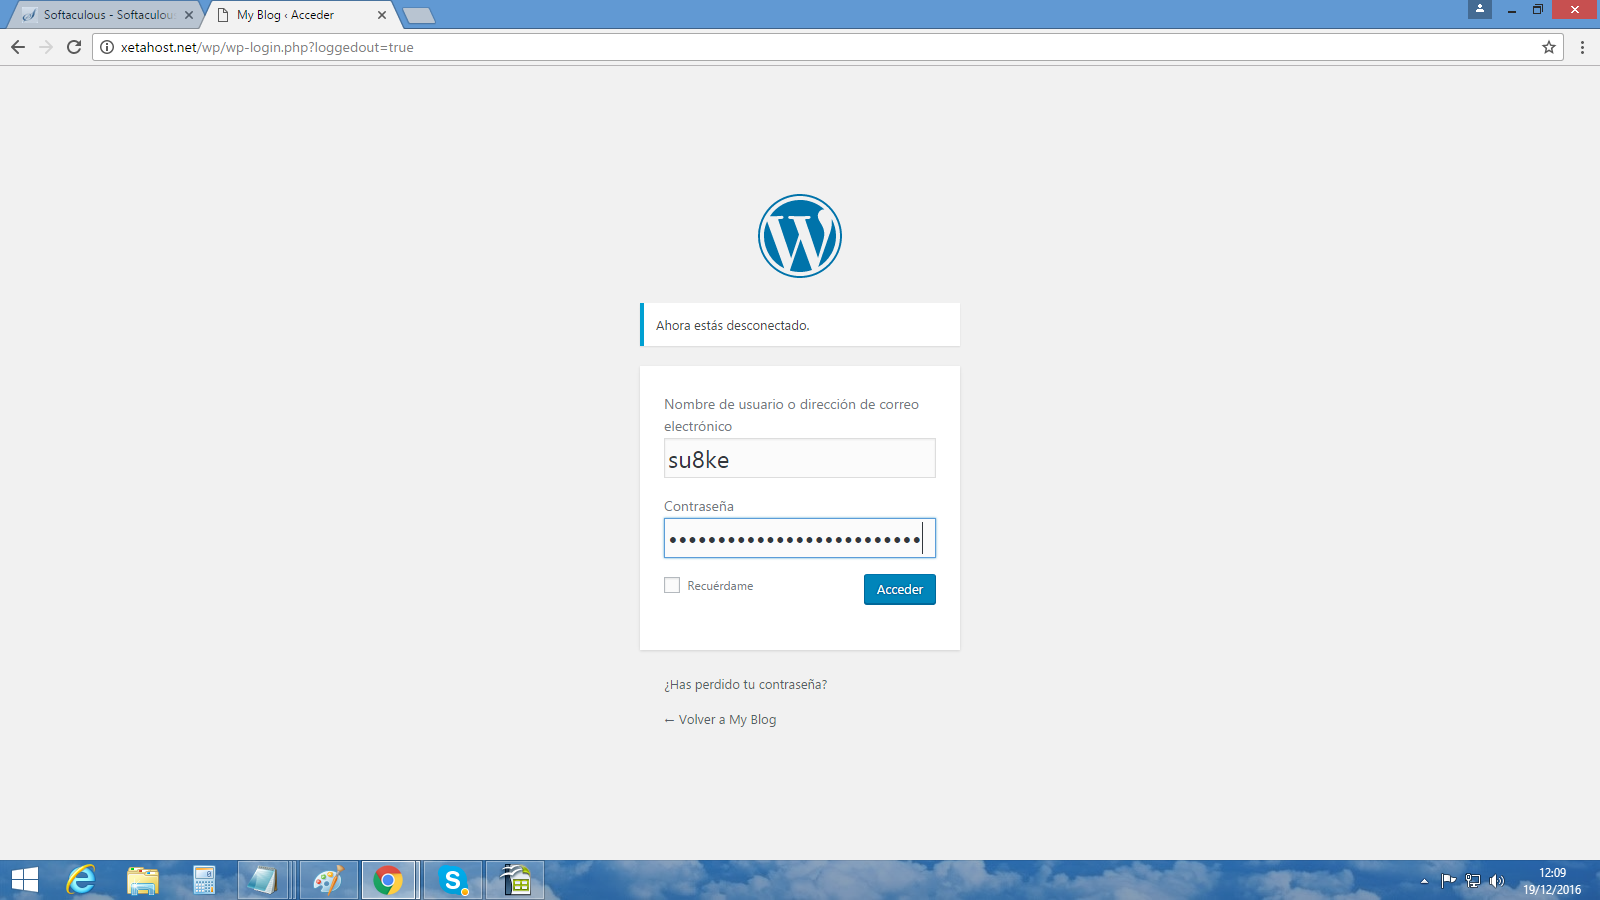 activar temas o templates para tu sitio en WordPress.